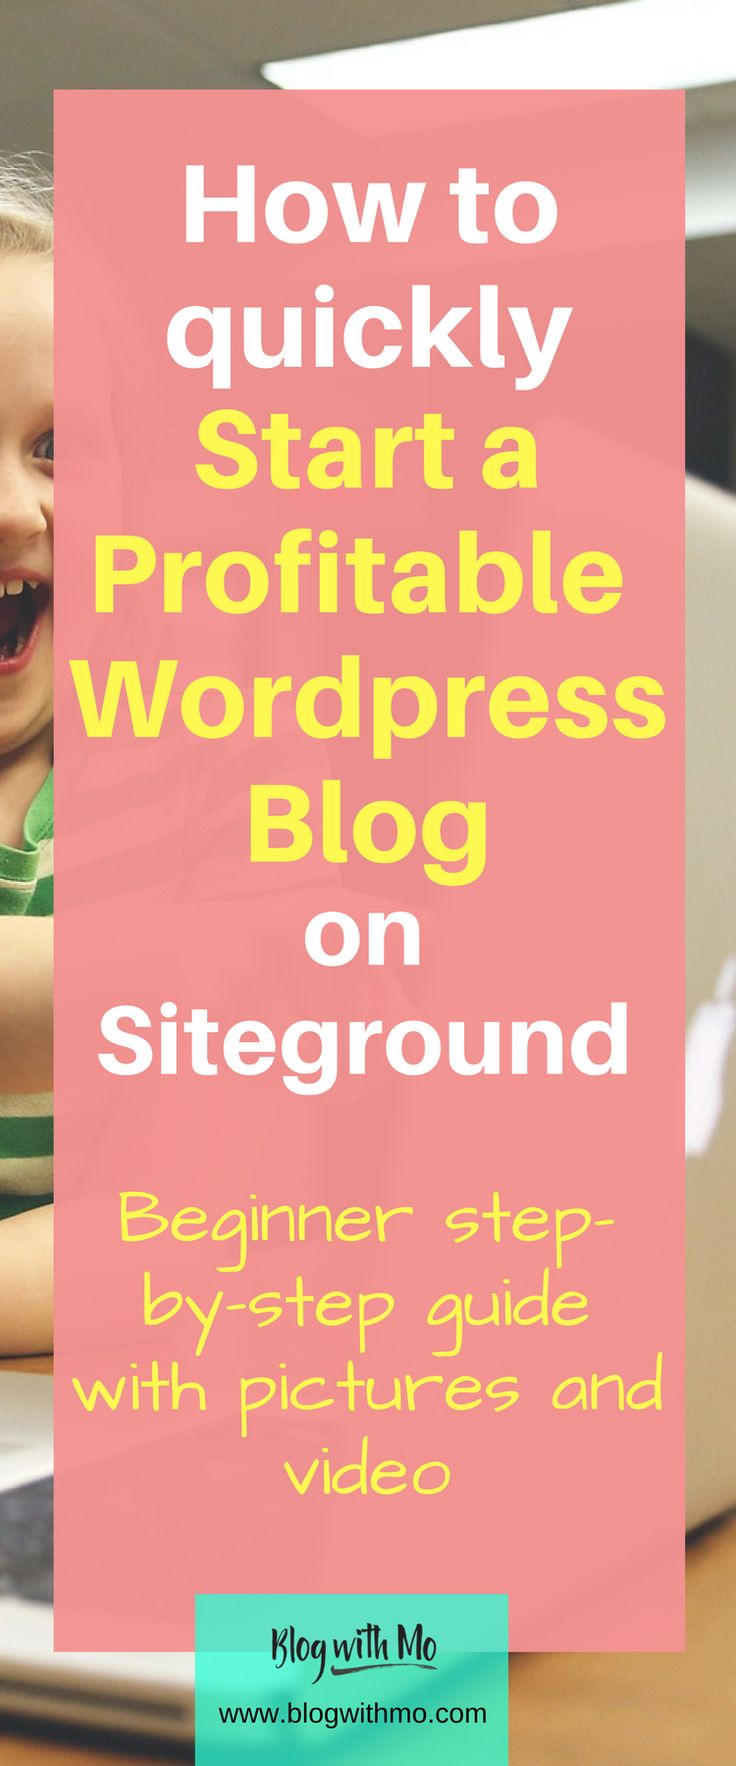 How to start a WordPress blog on Siteground. Beginner step-by-step guide with pictures and a video if you prefer on starting your money-making profitable blog on WordPress using Siteground as a host. I give my honest review of Siteground as well. I've been with them over 7 years.